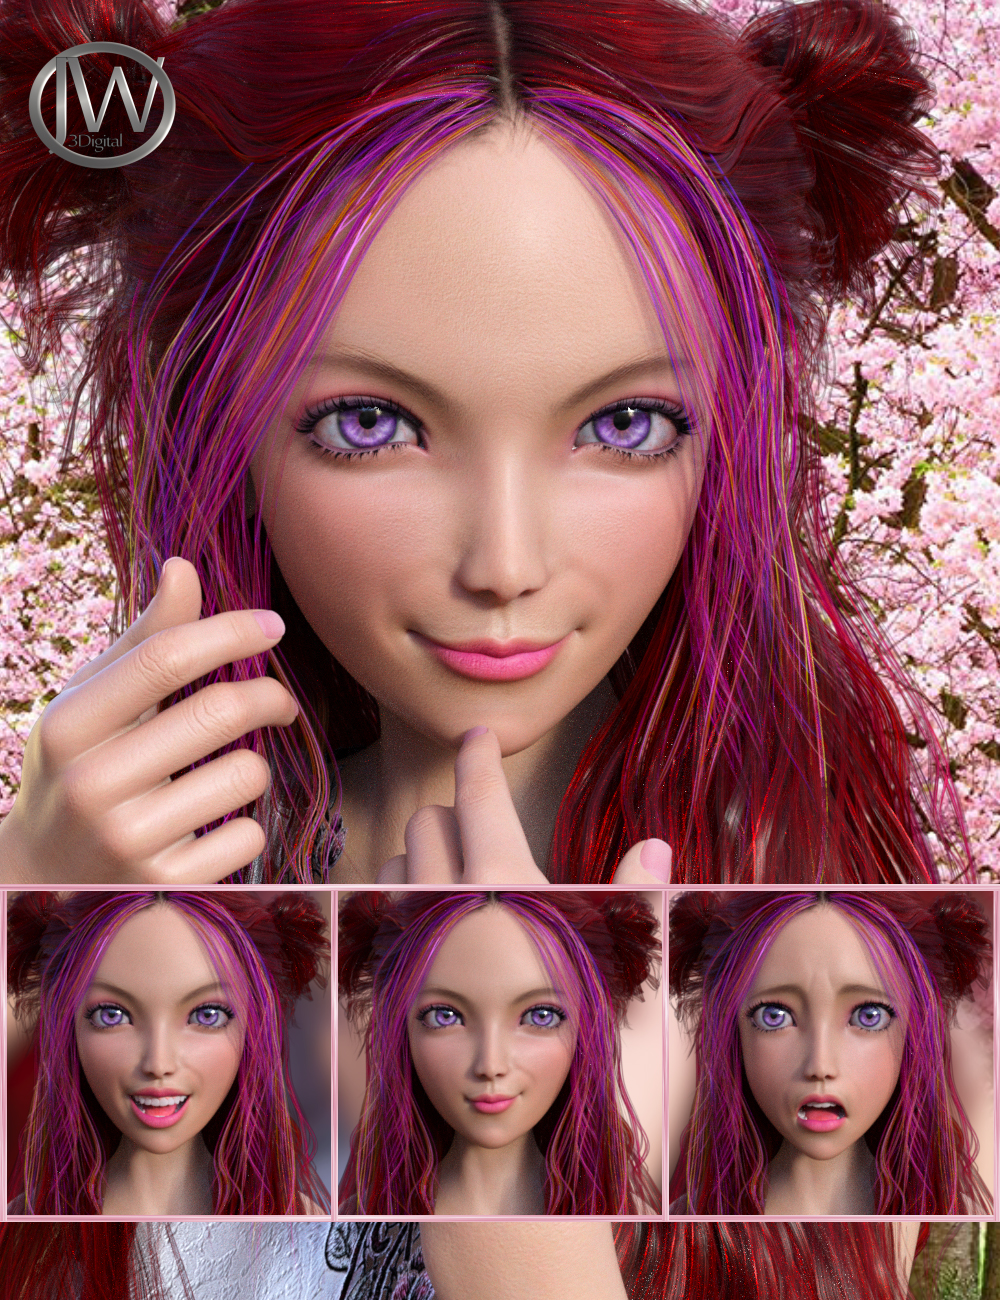 My Style - Expressions for Genesis 8 Female and Kanade 8 by: JWolf, 3D Models by Daz 3D